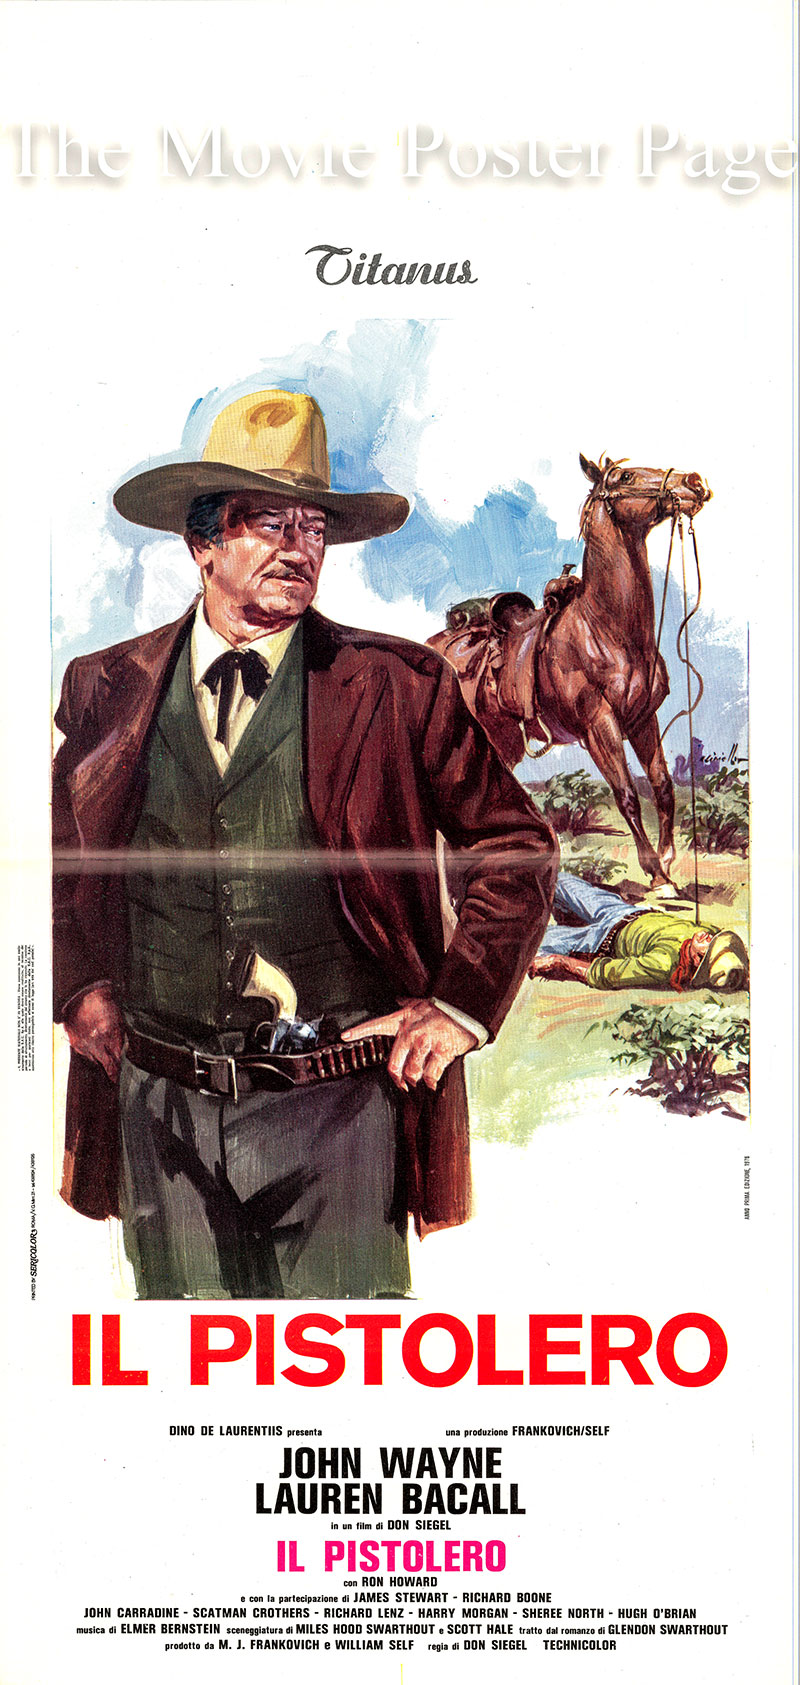 Pictured is an Italian locandina promotional poster for the 1976 Don Siegel film The Shootist starring John Wayne.